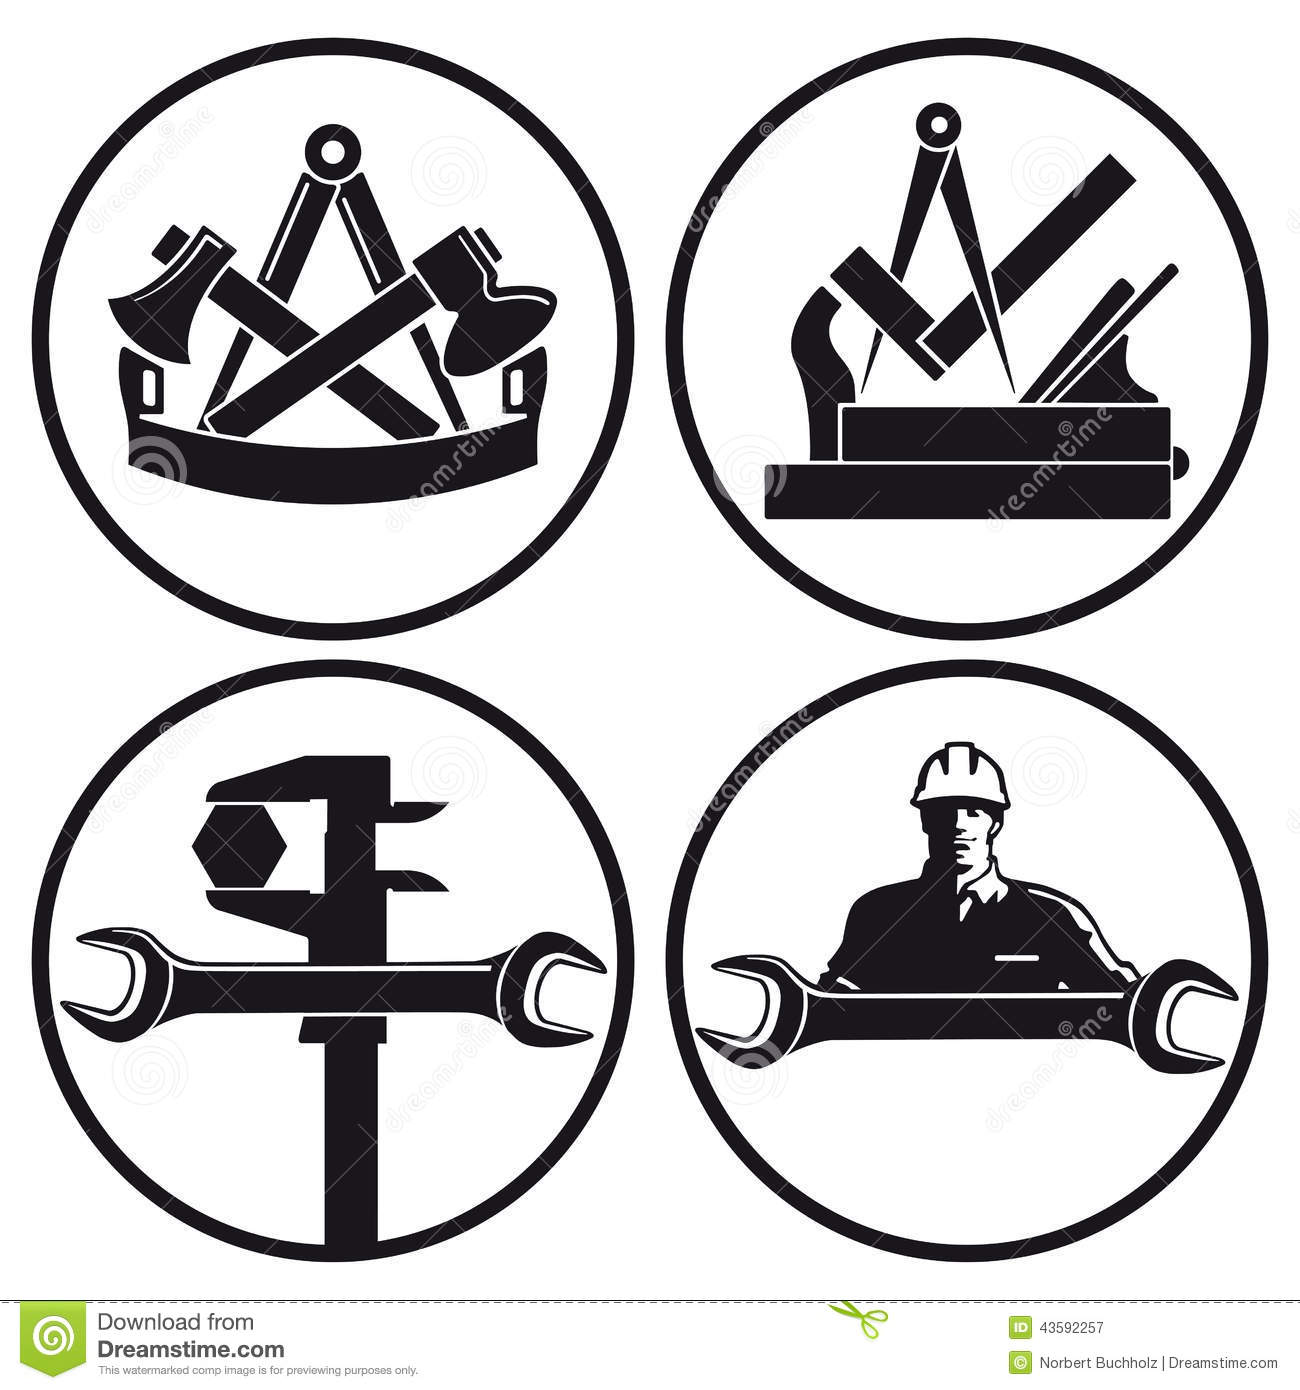 Carpentry And Tool Symbols Stock Vector Illustration Of Symbols